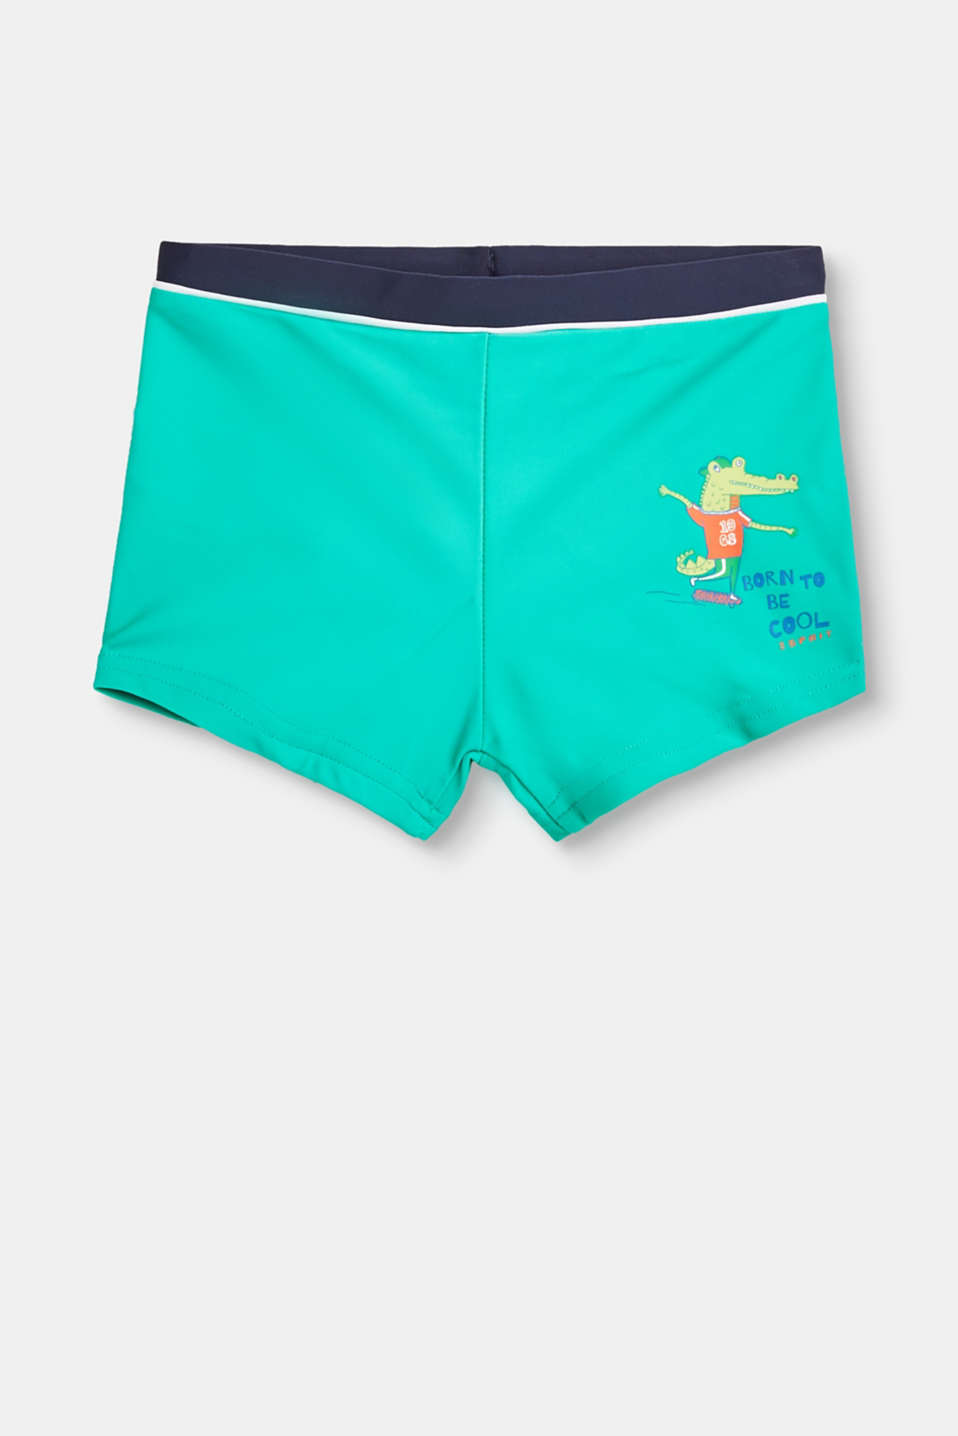 Cool swimwear for laid-back lads! Swimming will be even more fun in these retro shorts with a print motif.